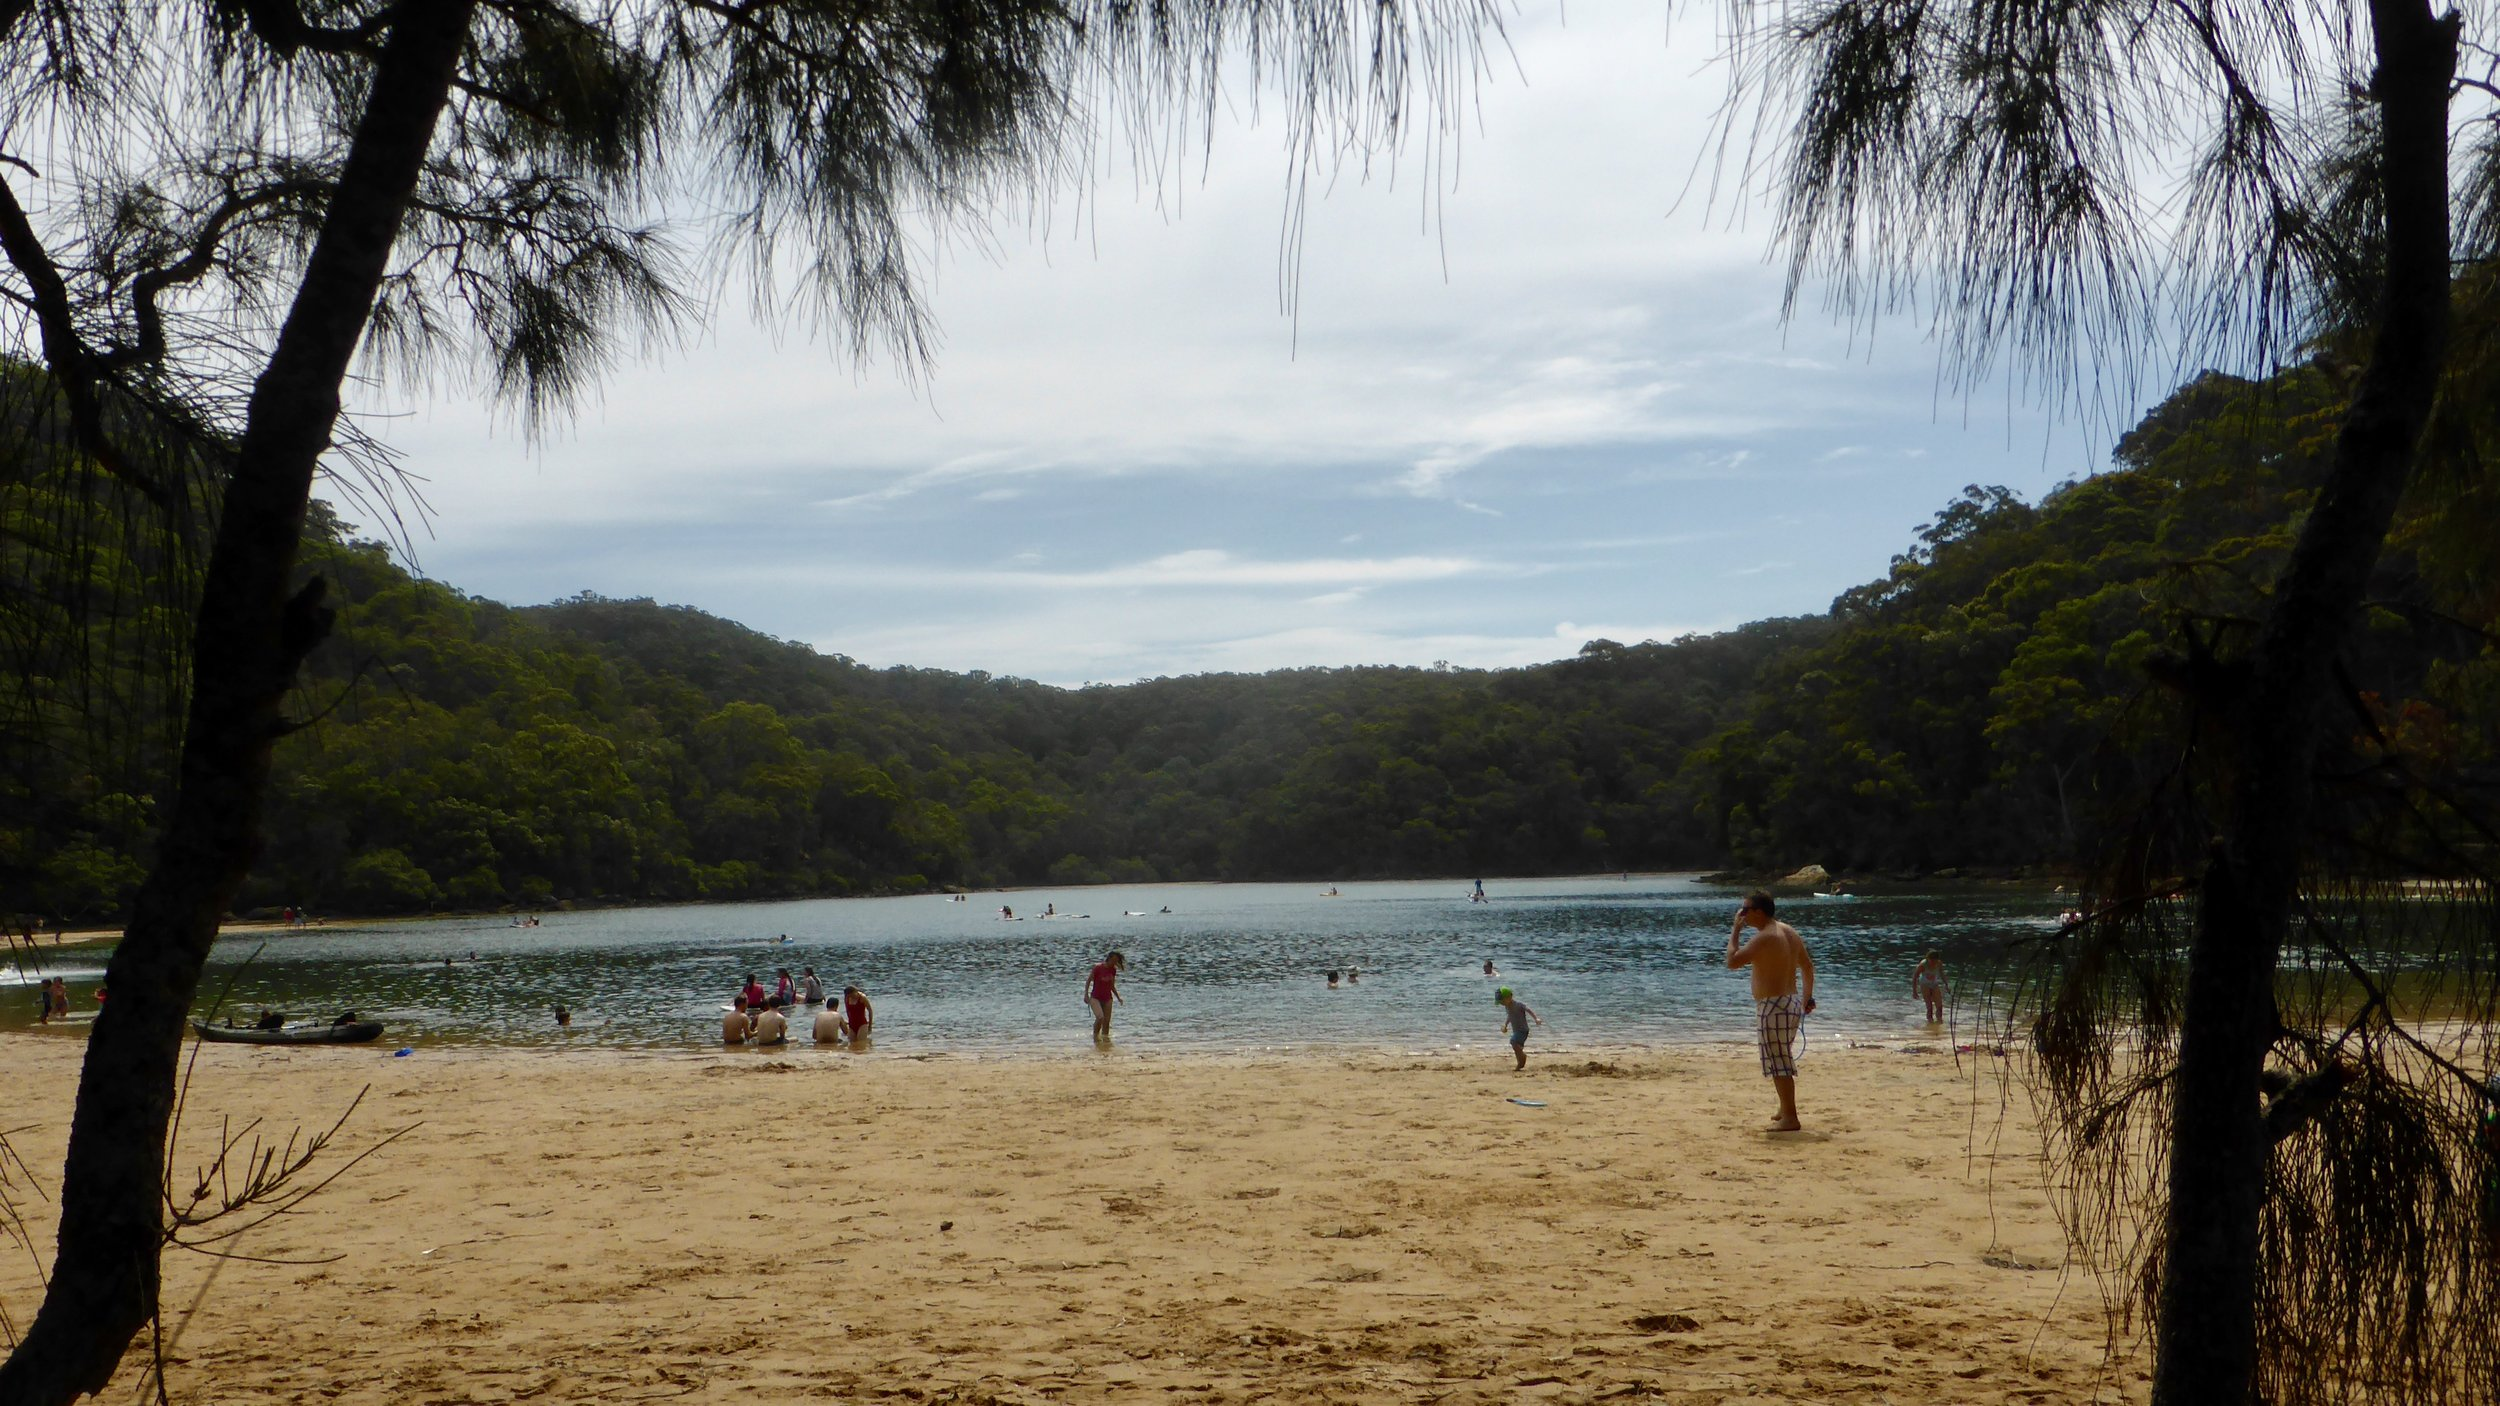 The Basin, a short boat ride from Palm Beach, Northern Beaches, Sydney, New South Wales. Part of Ku-ring-gai Chase National Park